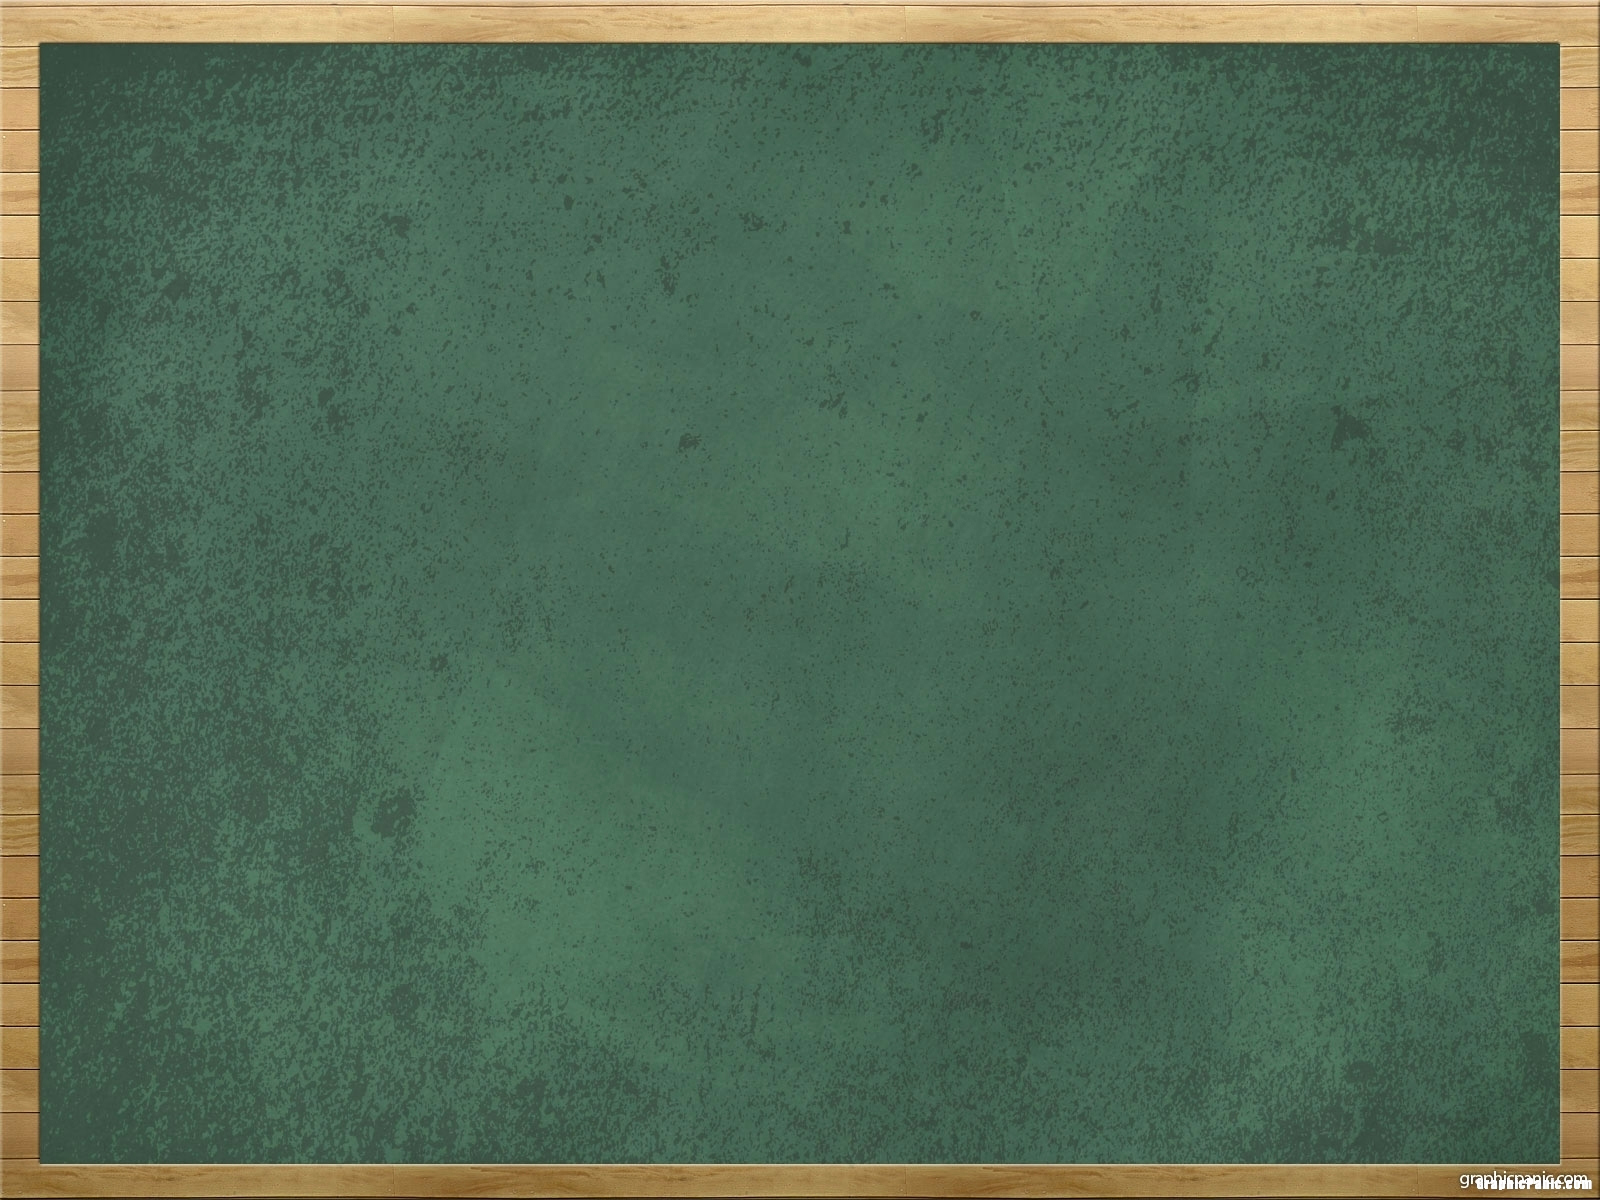 Menu Board Template Powerpoint Awesome Green Chalkboard Background Wooden Frame – Graphicpanic